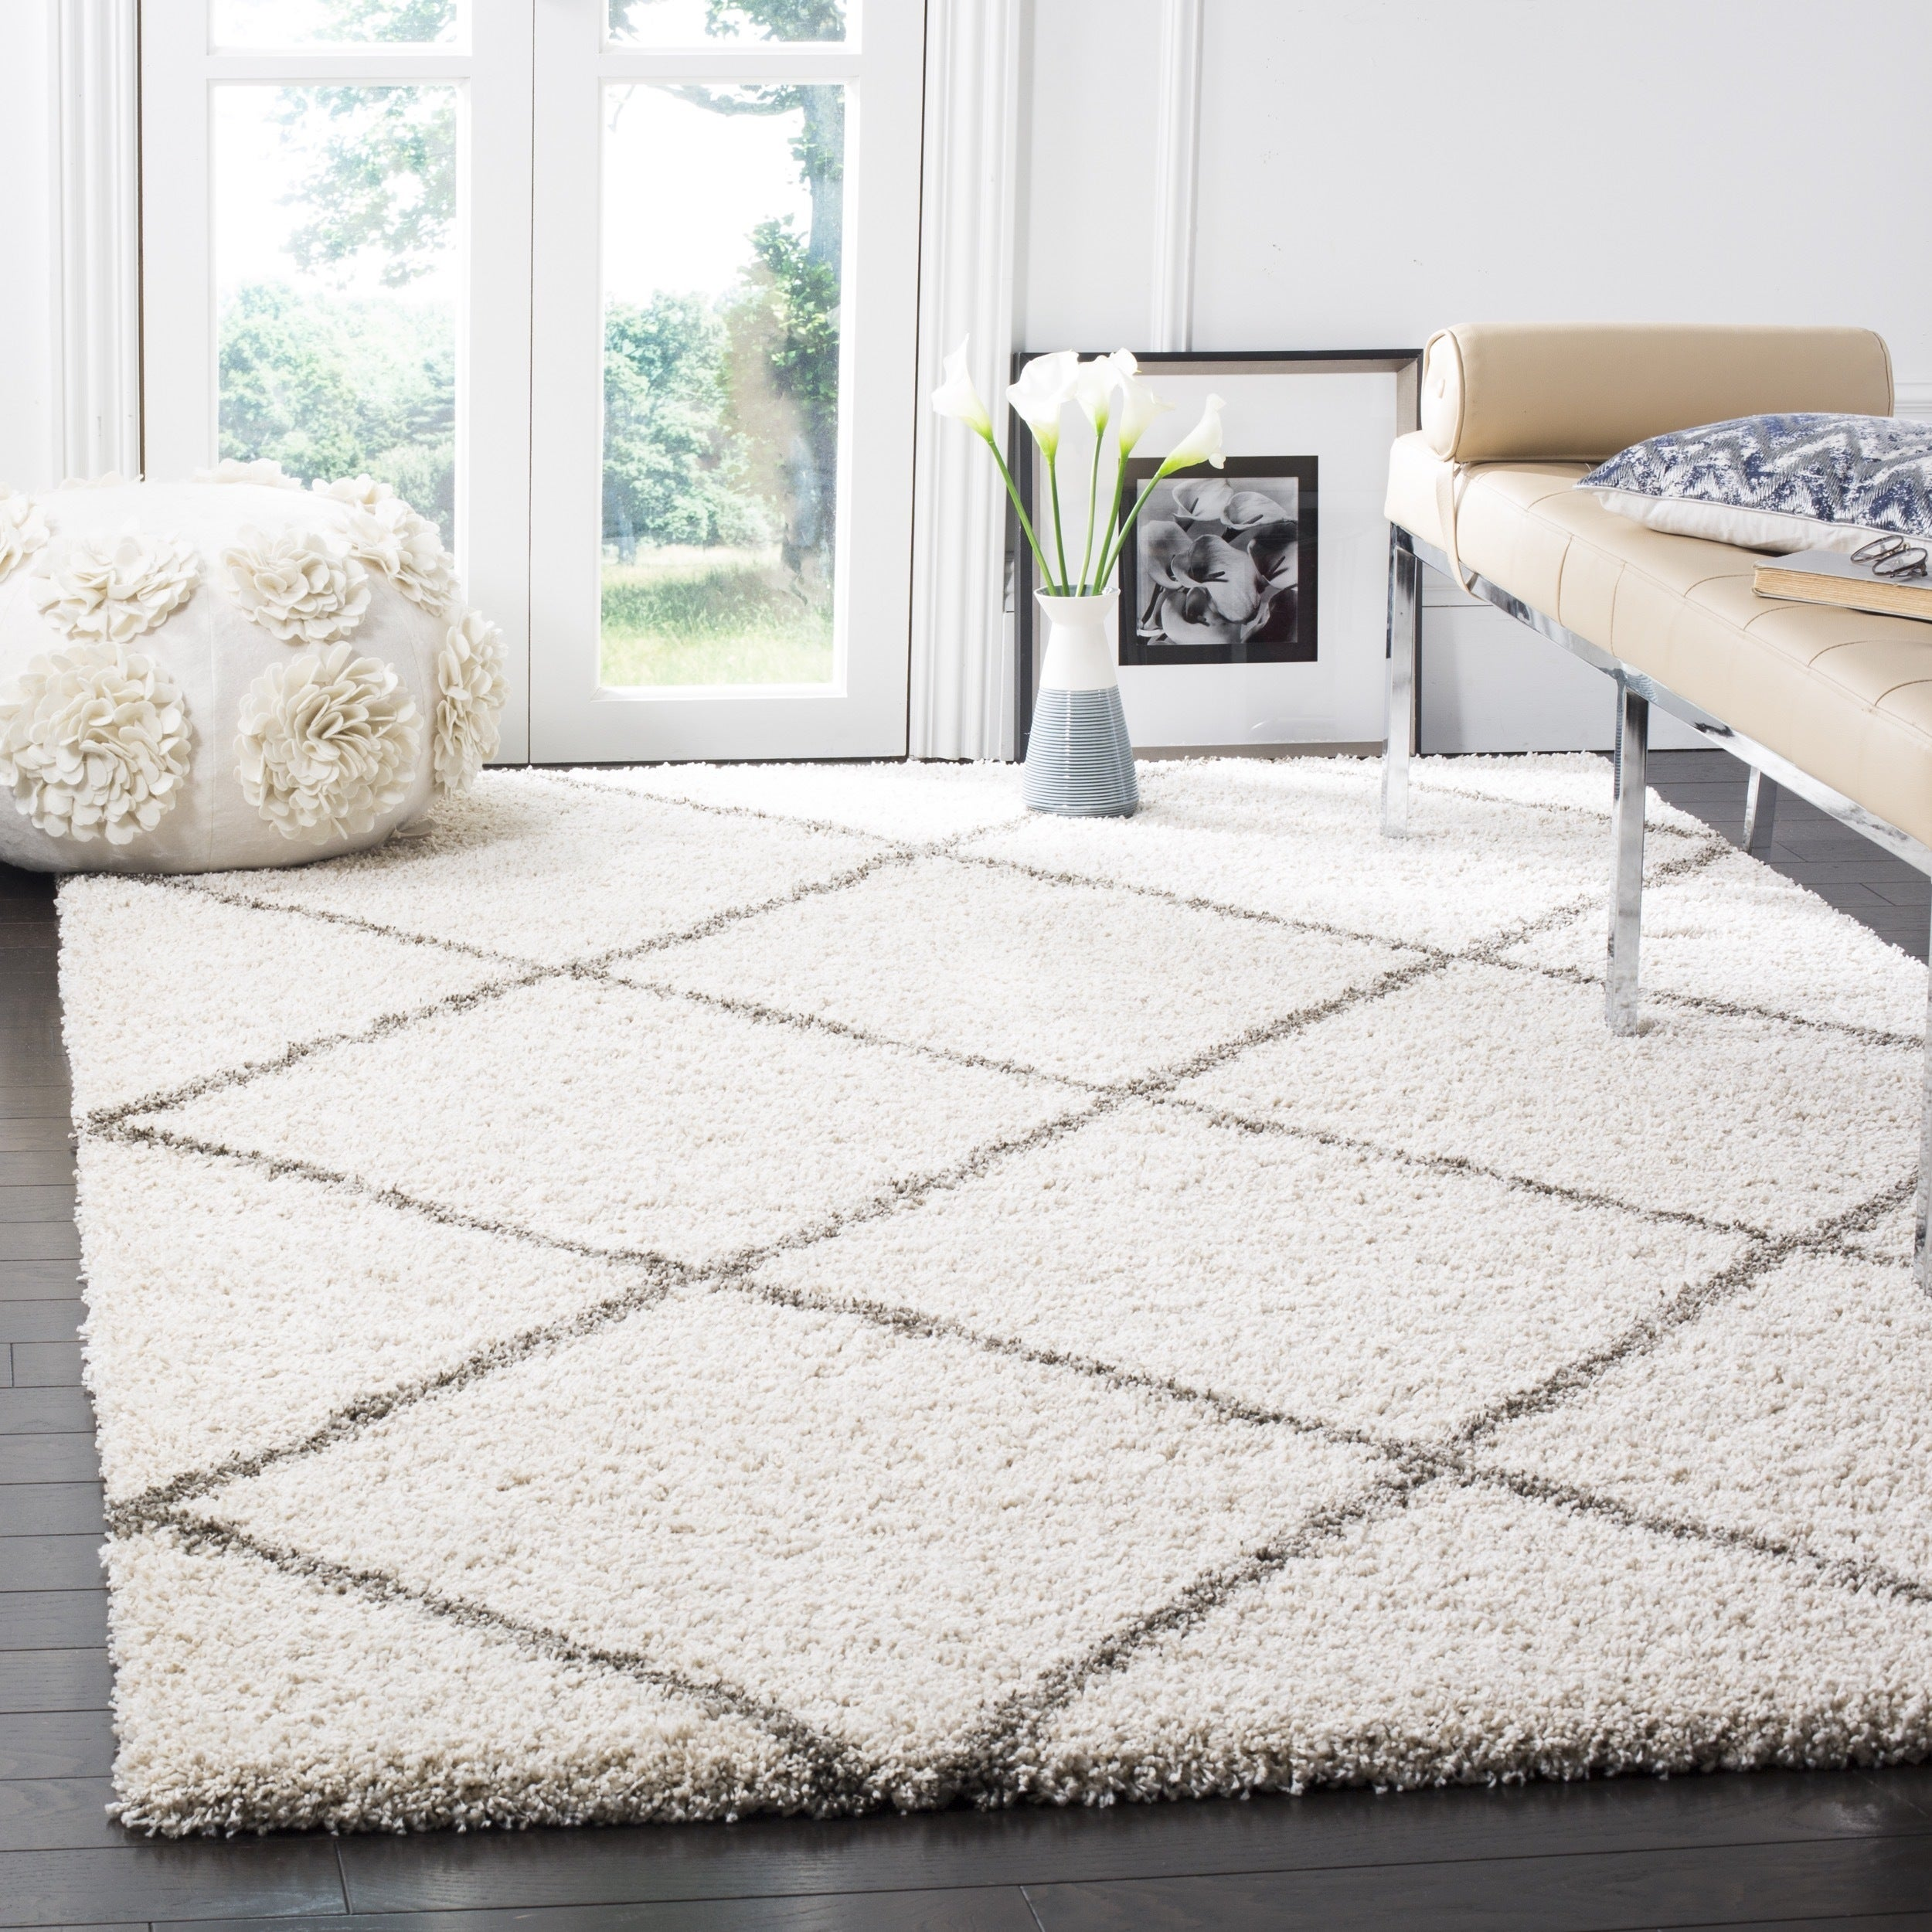 area white sisal room ivory grey costco pile walmart shaggy rugs extra fluffy cream big target rug wool furry shag plush class top silver tan carpet ideas large living lowes